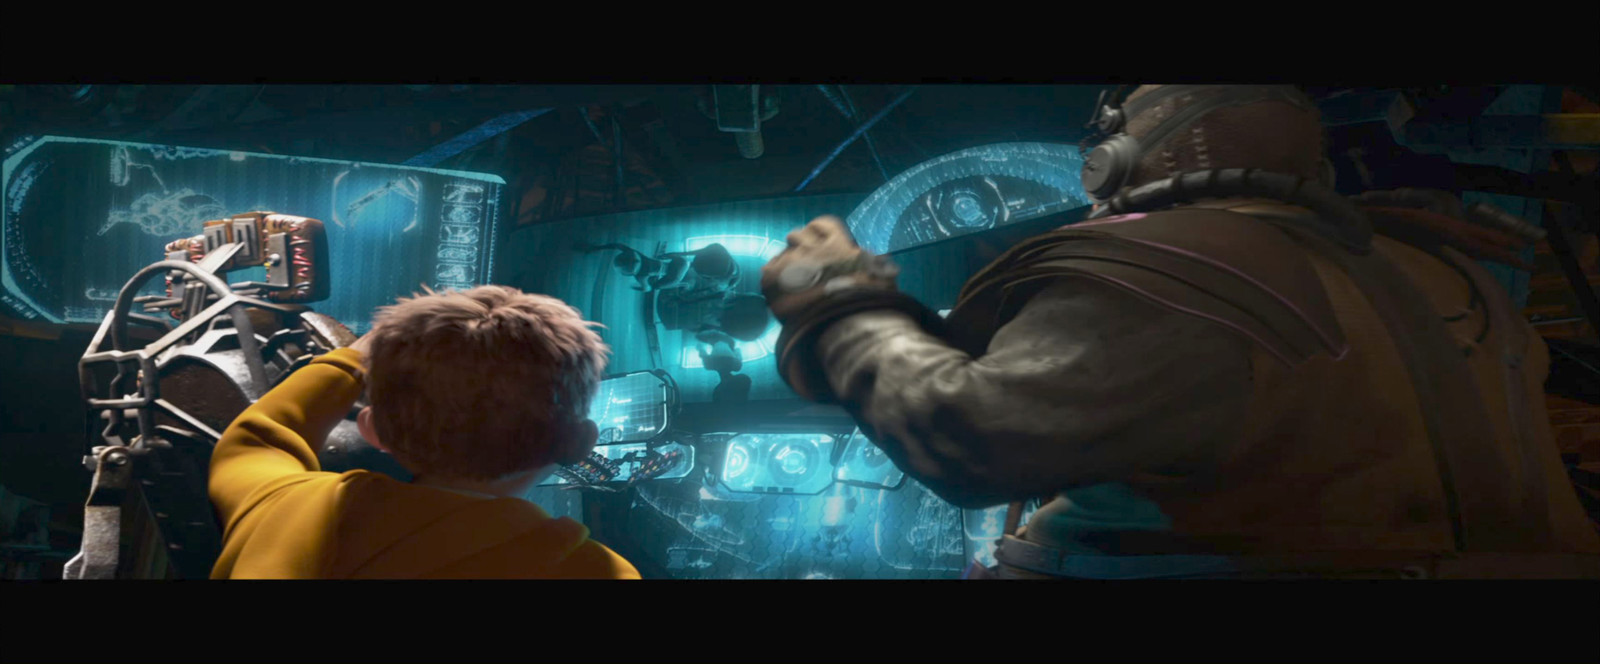 Mars Needs Moms Lighting and Compositing